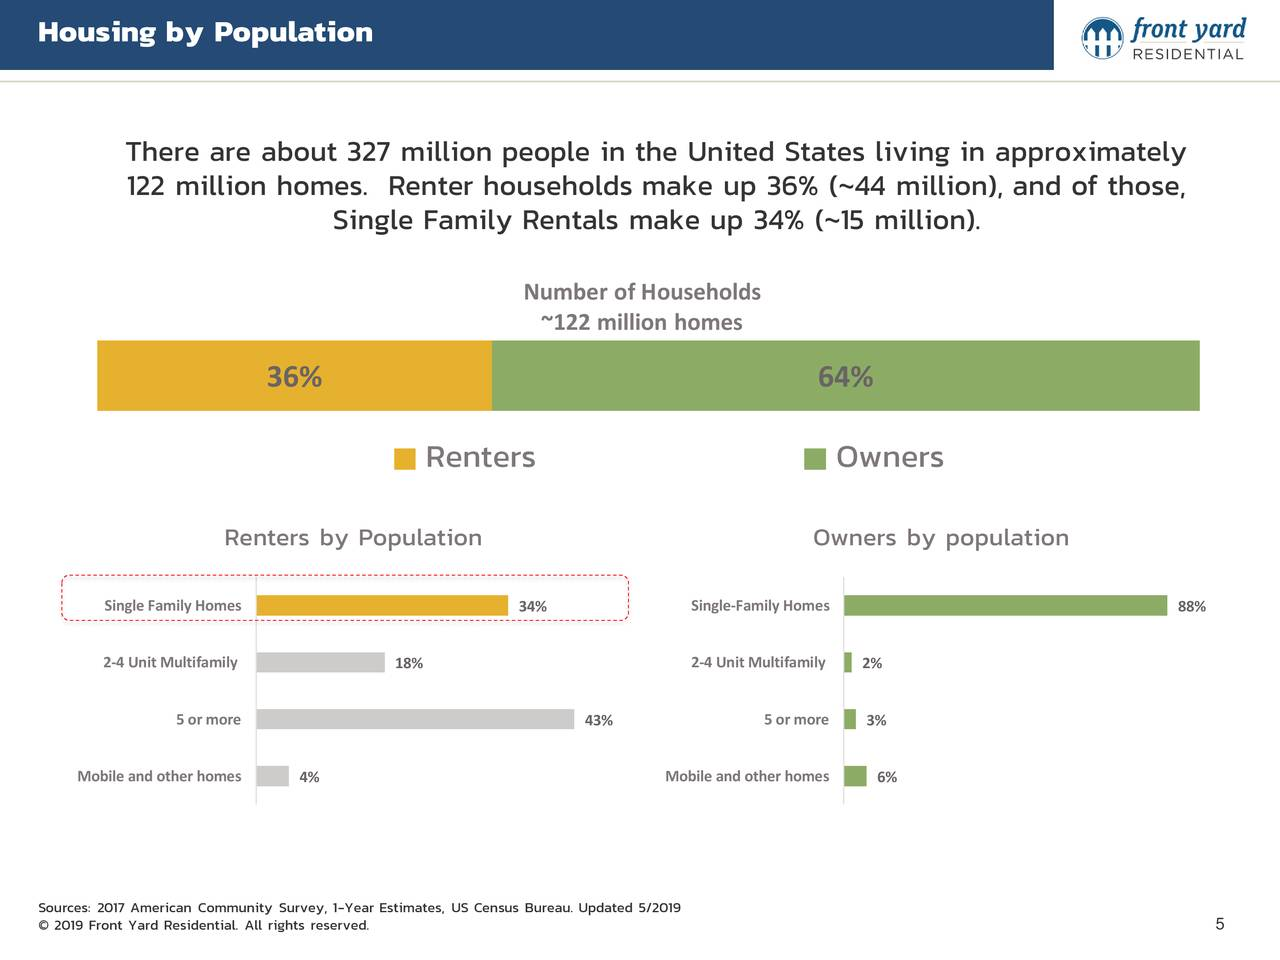 There are about 327 million people in the United States living in approximately 122 million homes. Renter households make up 36% (~44 million), and of those, Single Family Rentals make up 34% (~15 million). Number of Households ~122 million homes 36% 64% Renters Owners Renters by Population Owners by population Single Family Homes 34% Single-Family Homes 88% 2-4 Unit Multifamily 18% 2-4 Unit Multifam2%y 5 or more 5 or more 43% 3% Mobile and other homes4% Mobile and other home6% Sources: 2017 American Community Survey, 1-Year Estimates, US Census Bureau. Updated 5/2019 5 © 2019 Front Yard Residential. All rights reserved.